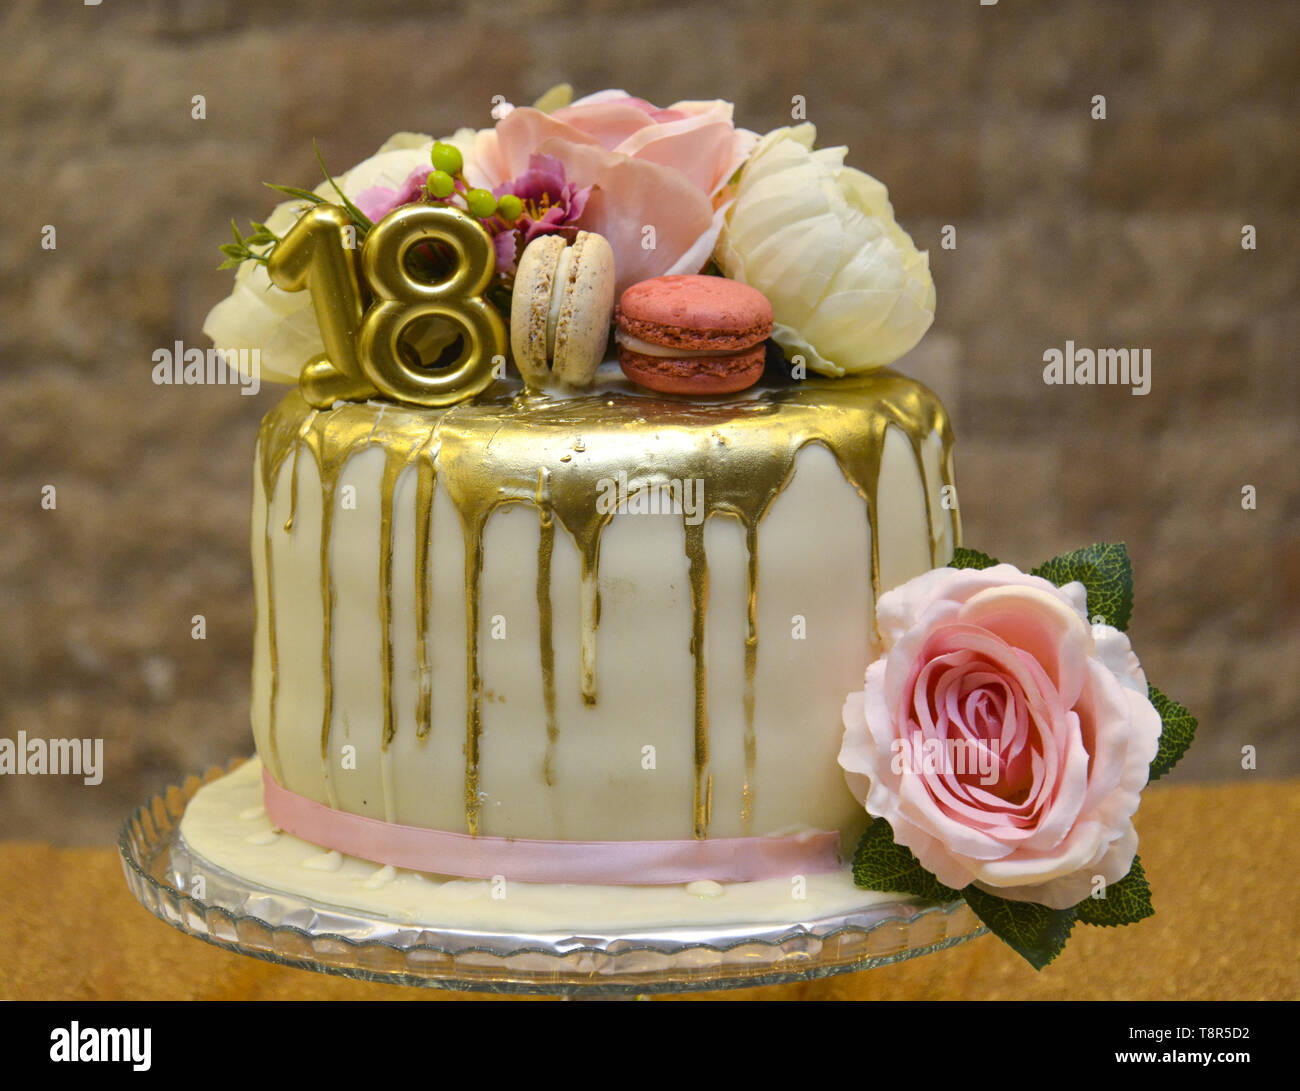 Surprising Golden Birthday Cake With Number 18 And Roses On The Cake Stock Funny Birthday Cards Online Alyptdamsfinfo